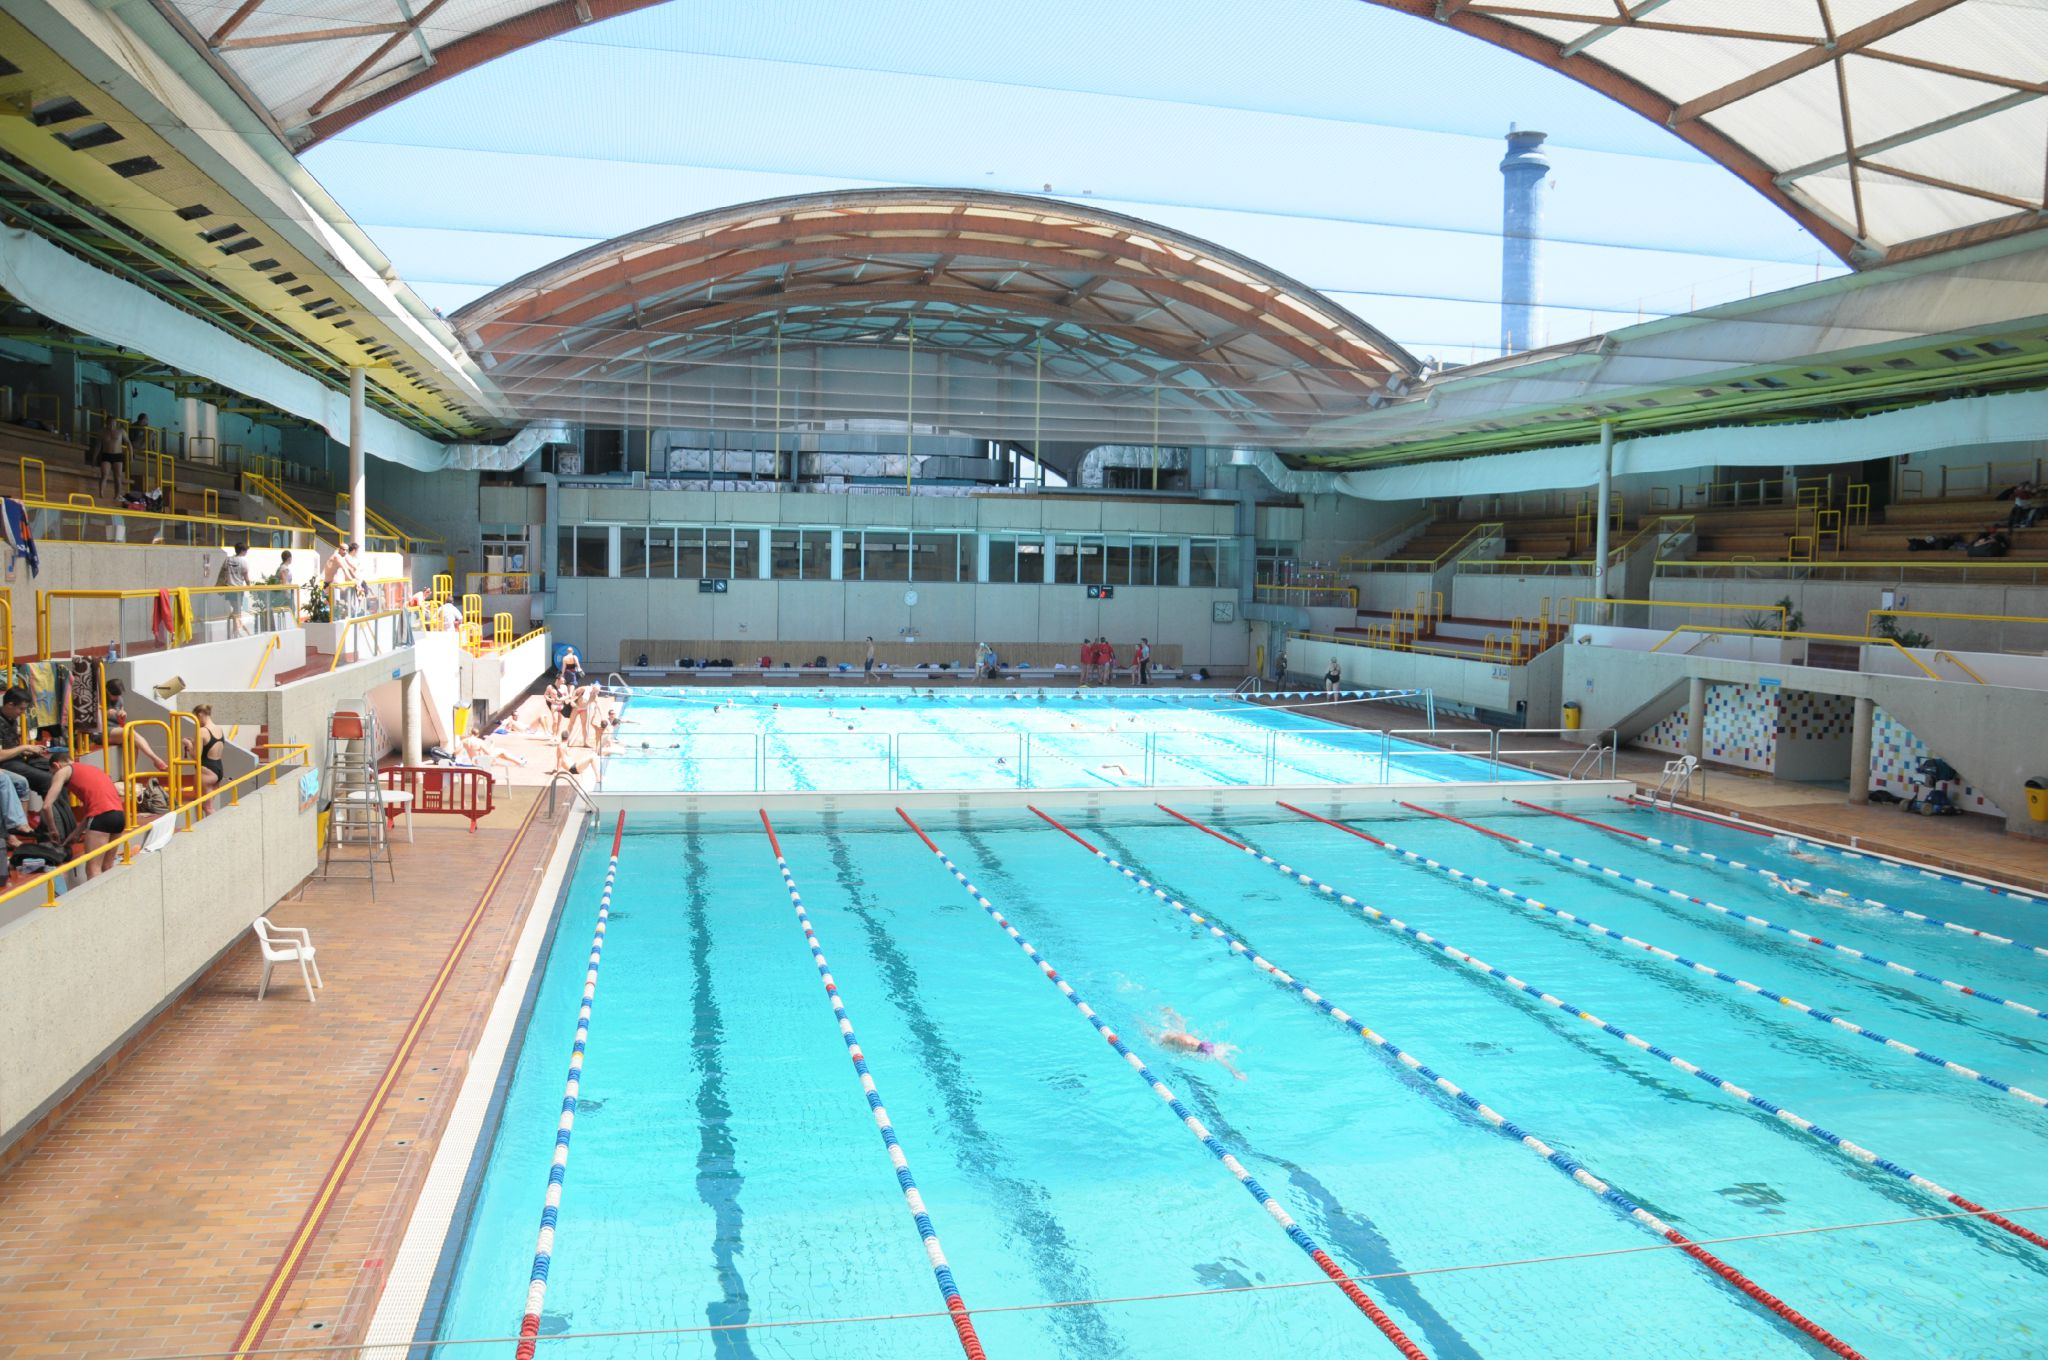 20 bonnes raisons d 39 adh rer au cercle du marais cercle for Aquagym piscine paris